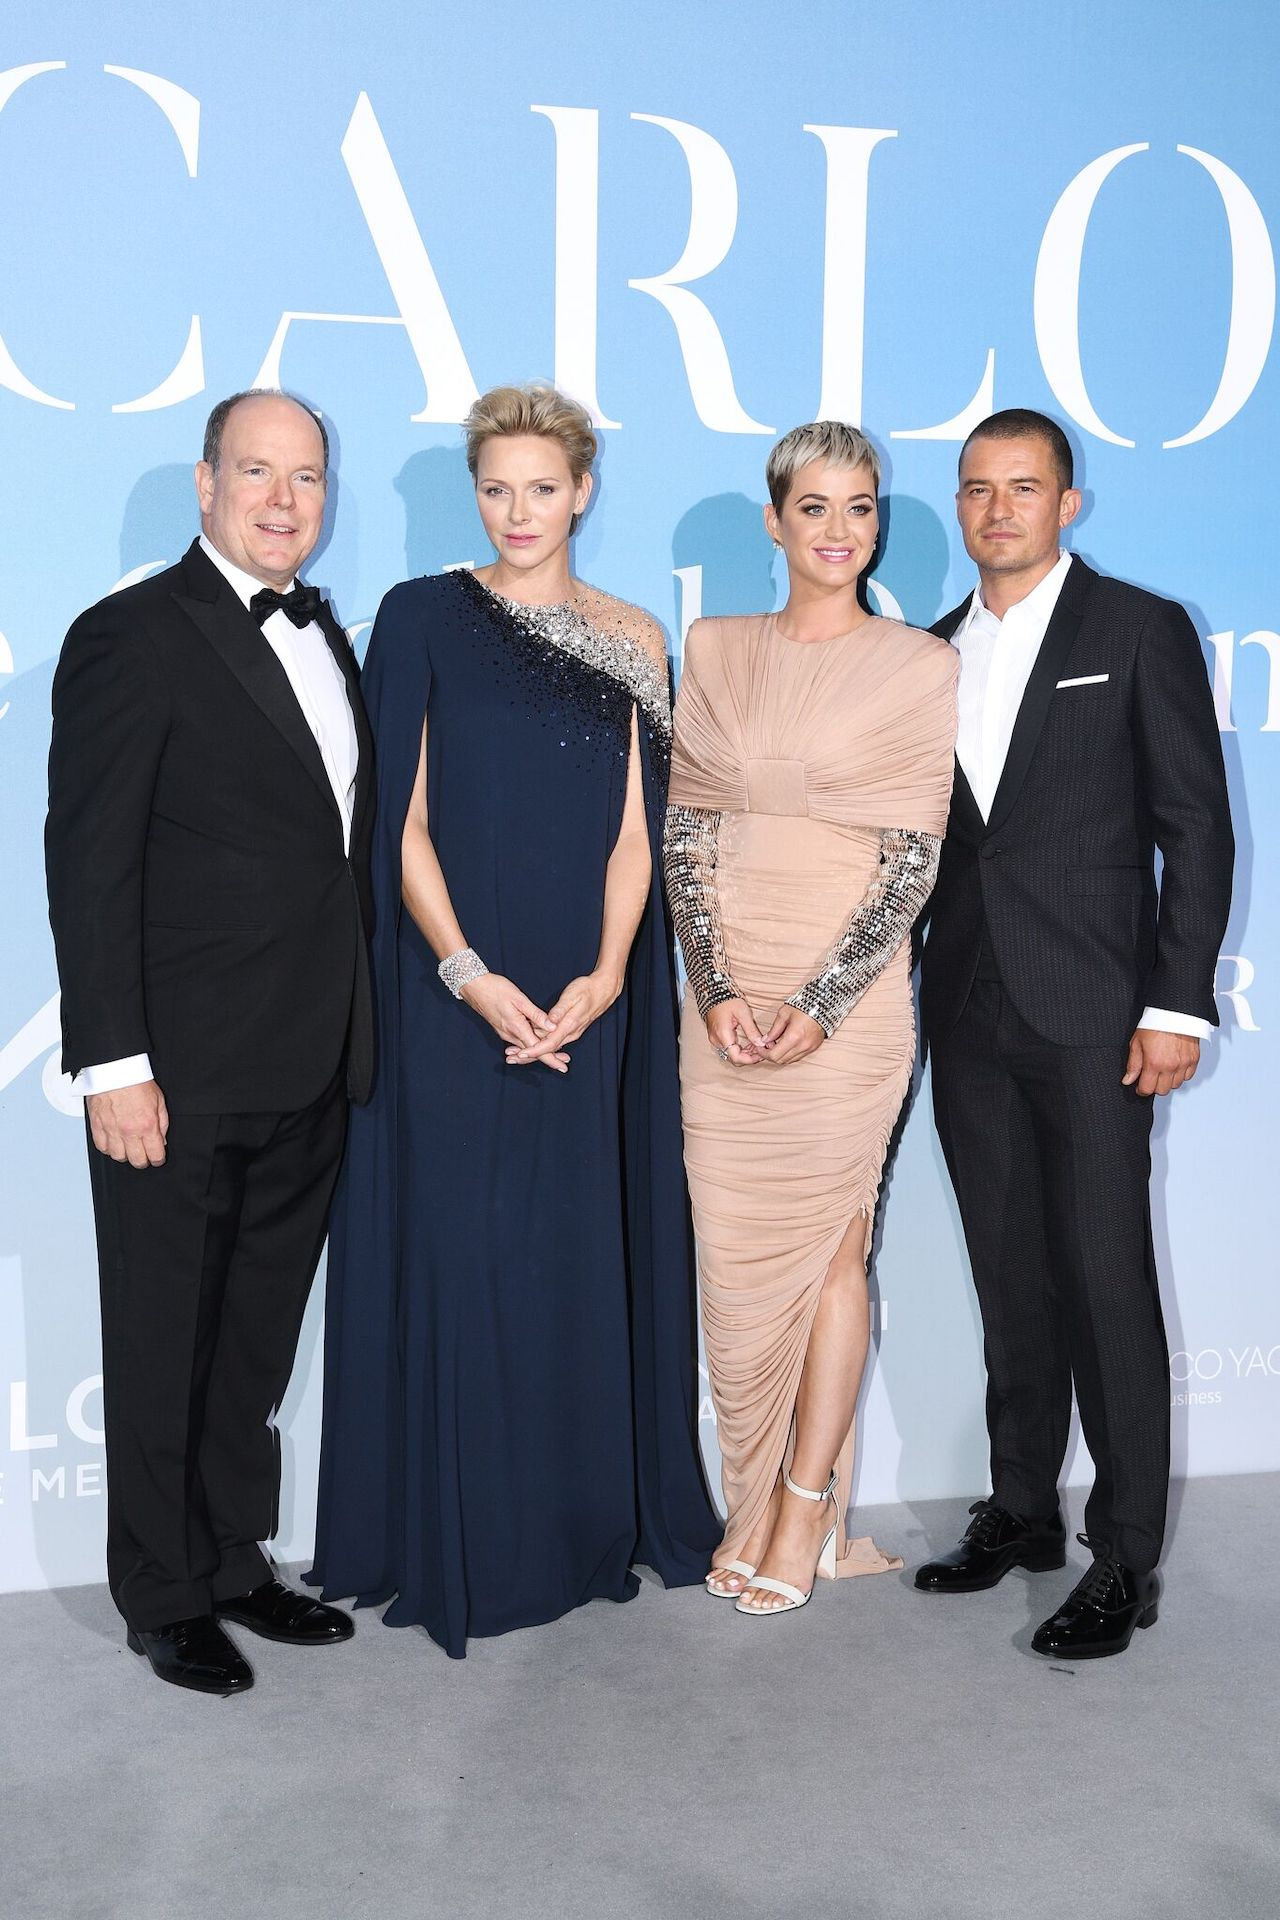 Charlene of Monaco, Albert II of Monaco, Katy Perry, and Orlando Bloom at the event